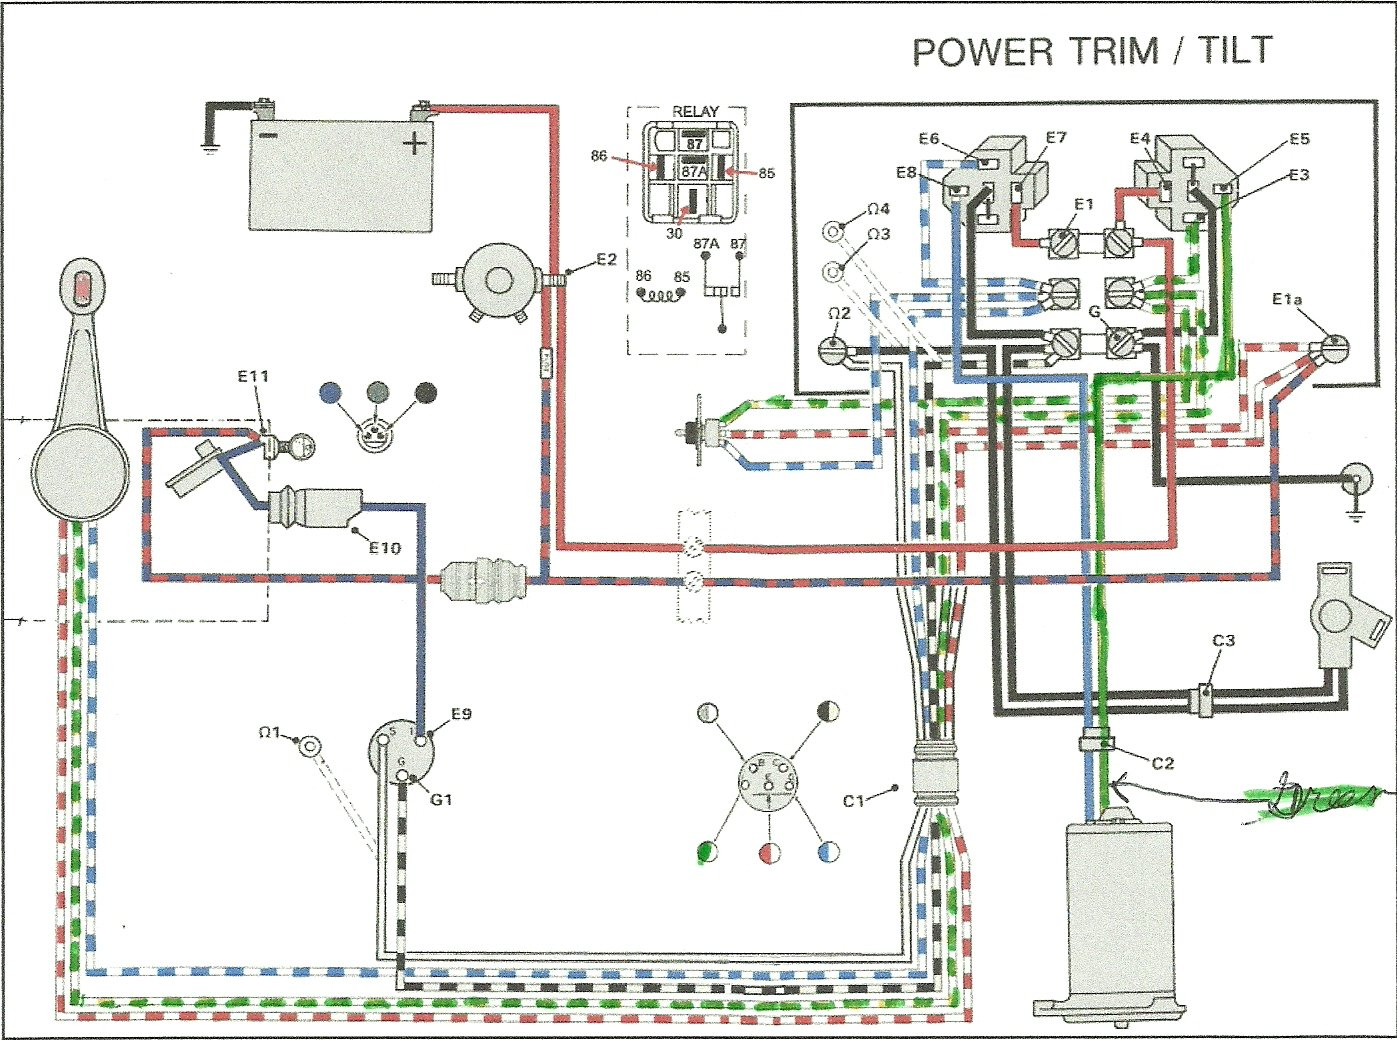 Omc Power Trim Wiring Diagram on mercruiser power trim pump diagram, power trim maintenance, power trim parts, power trim relay, power trim circuit, power trim switch, power trim hose, power trim 115 mucury,